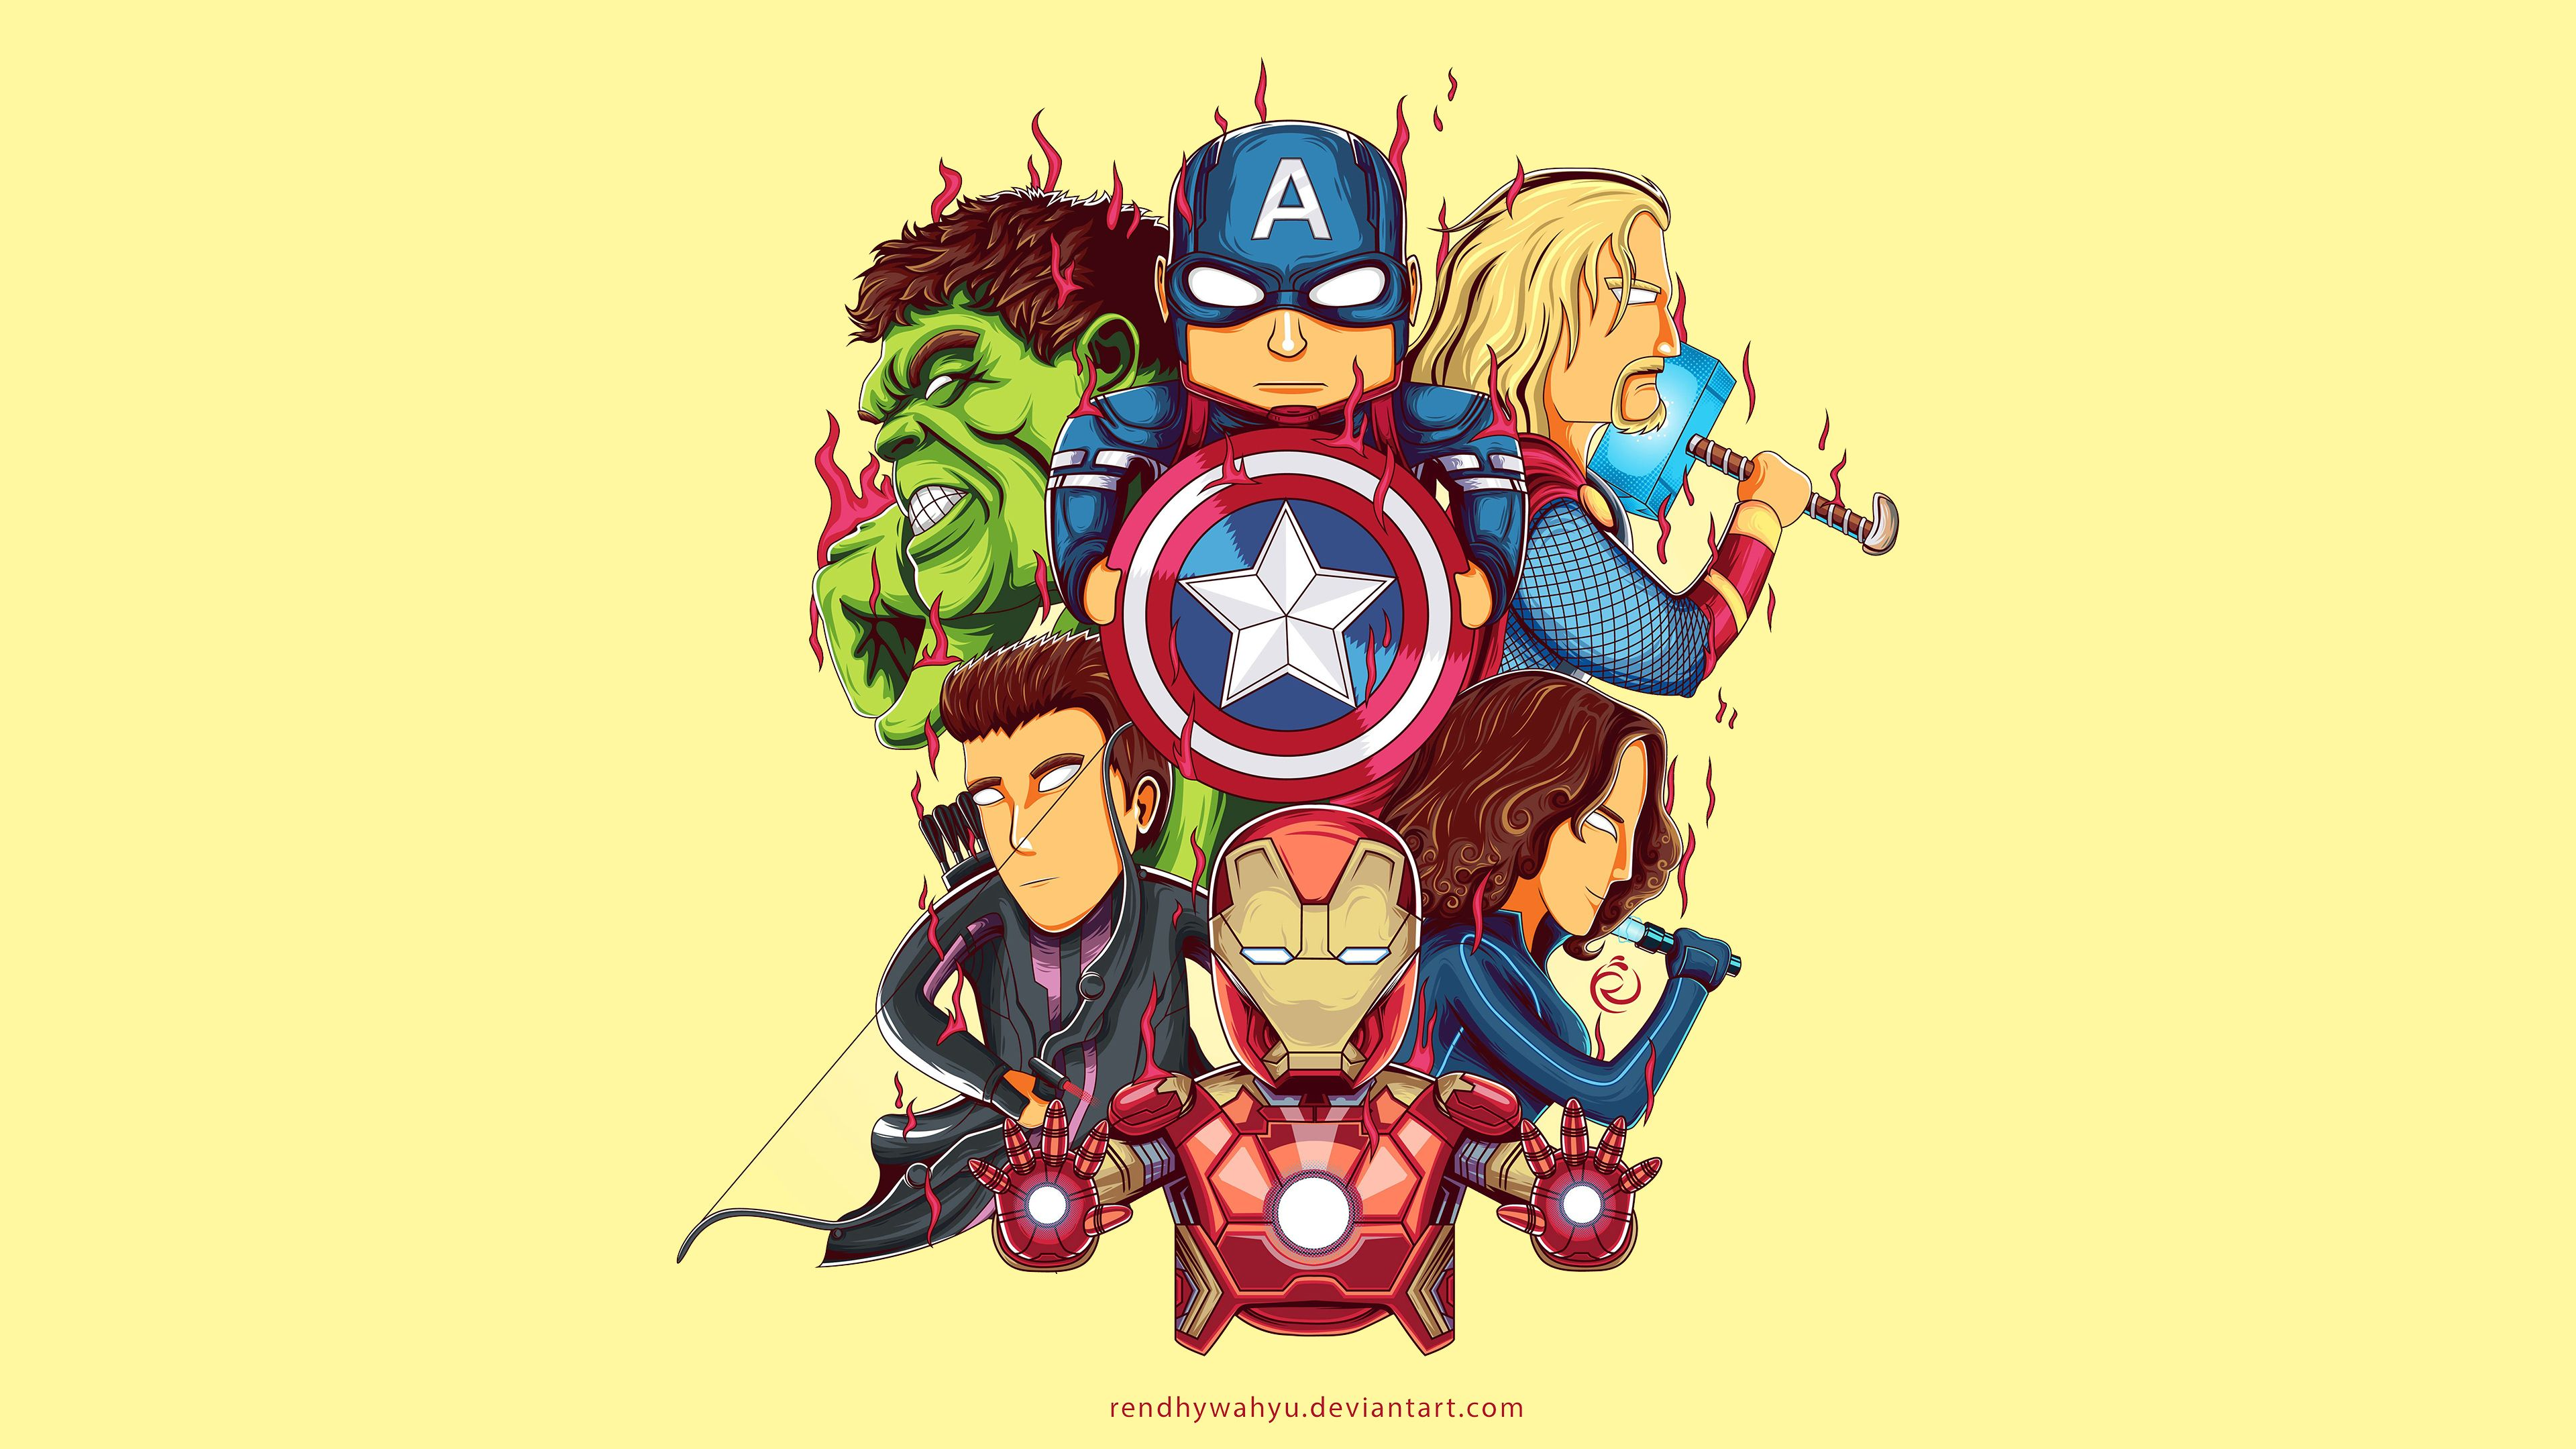 Little Avengers 4k Art Thor Wallpapers Superheroes Wallpapers Iron Man Wallpapers Hulk Wallpapers Hd Wa Thor Wallpaper Cartoon Wallpaper Avengers Wallpaper